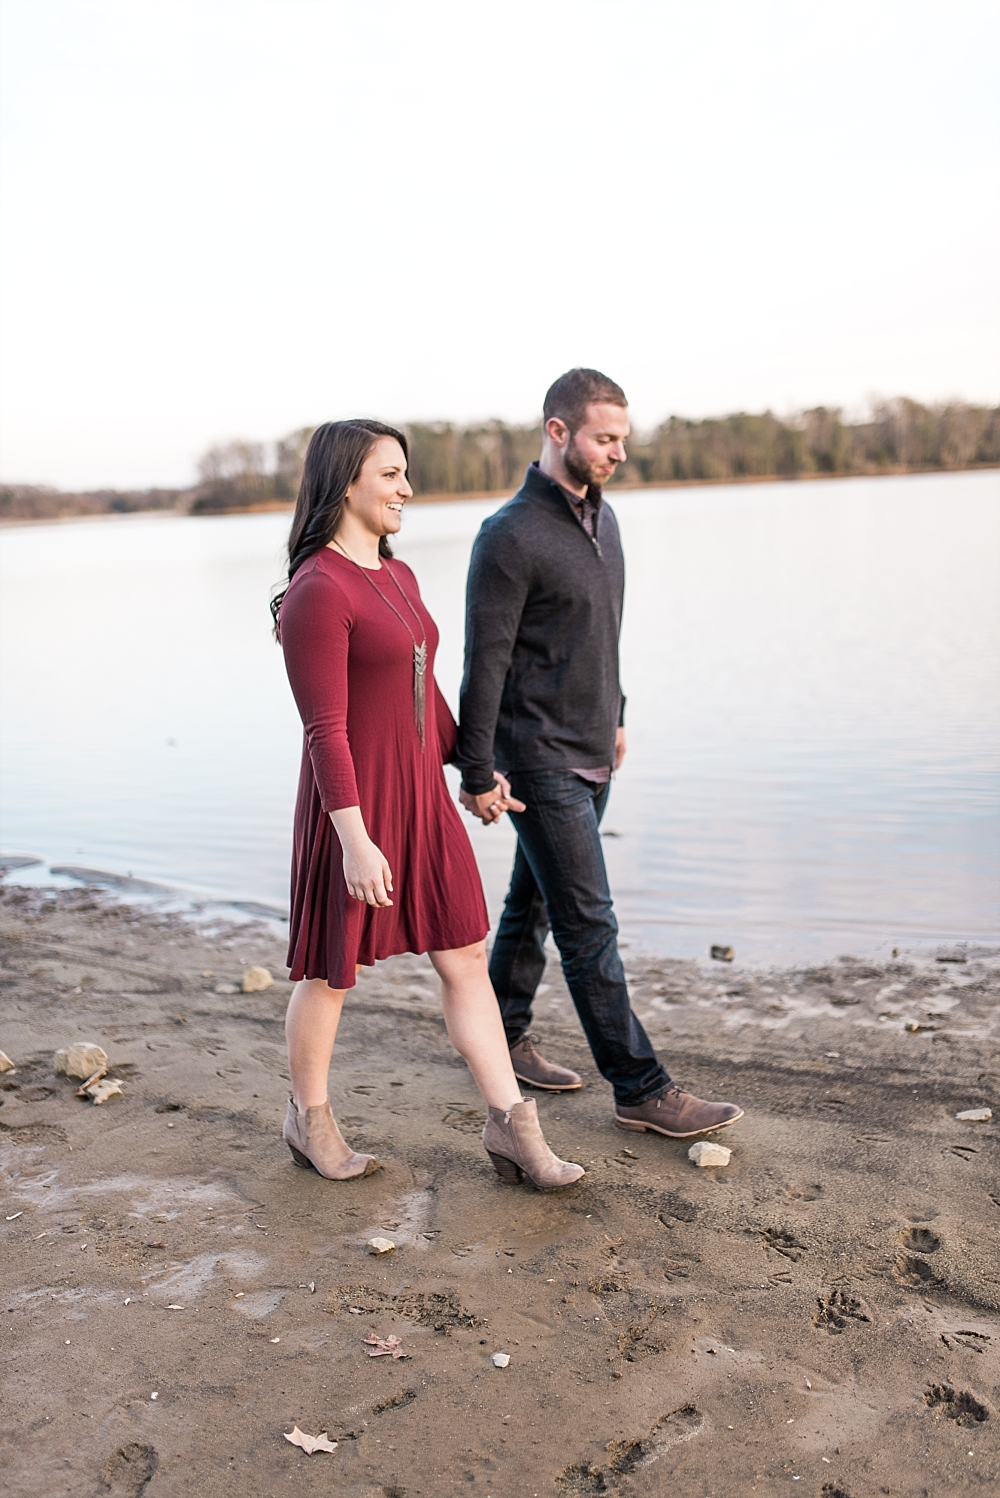 JuicebeatsPhotography_KnoxvilleEngagement_Kristina&Ben_0024.jpg